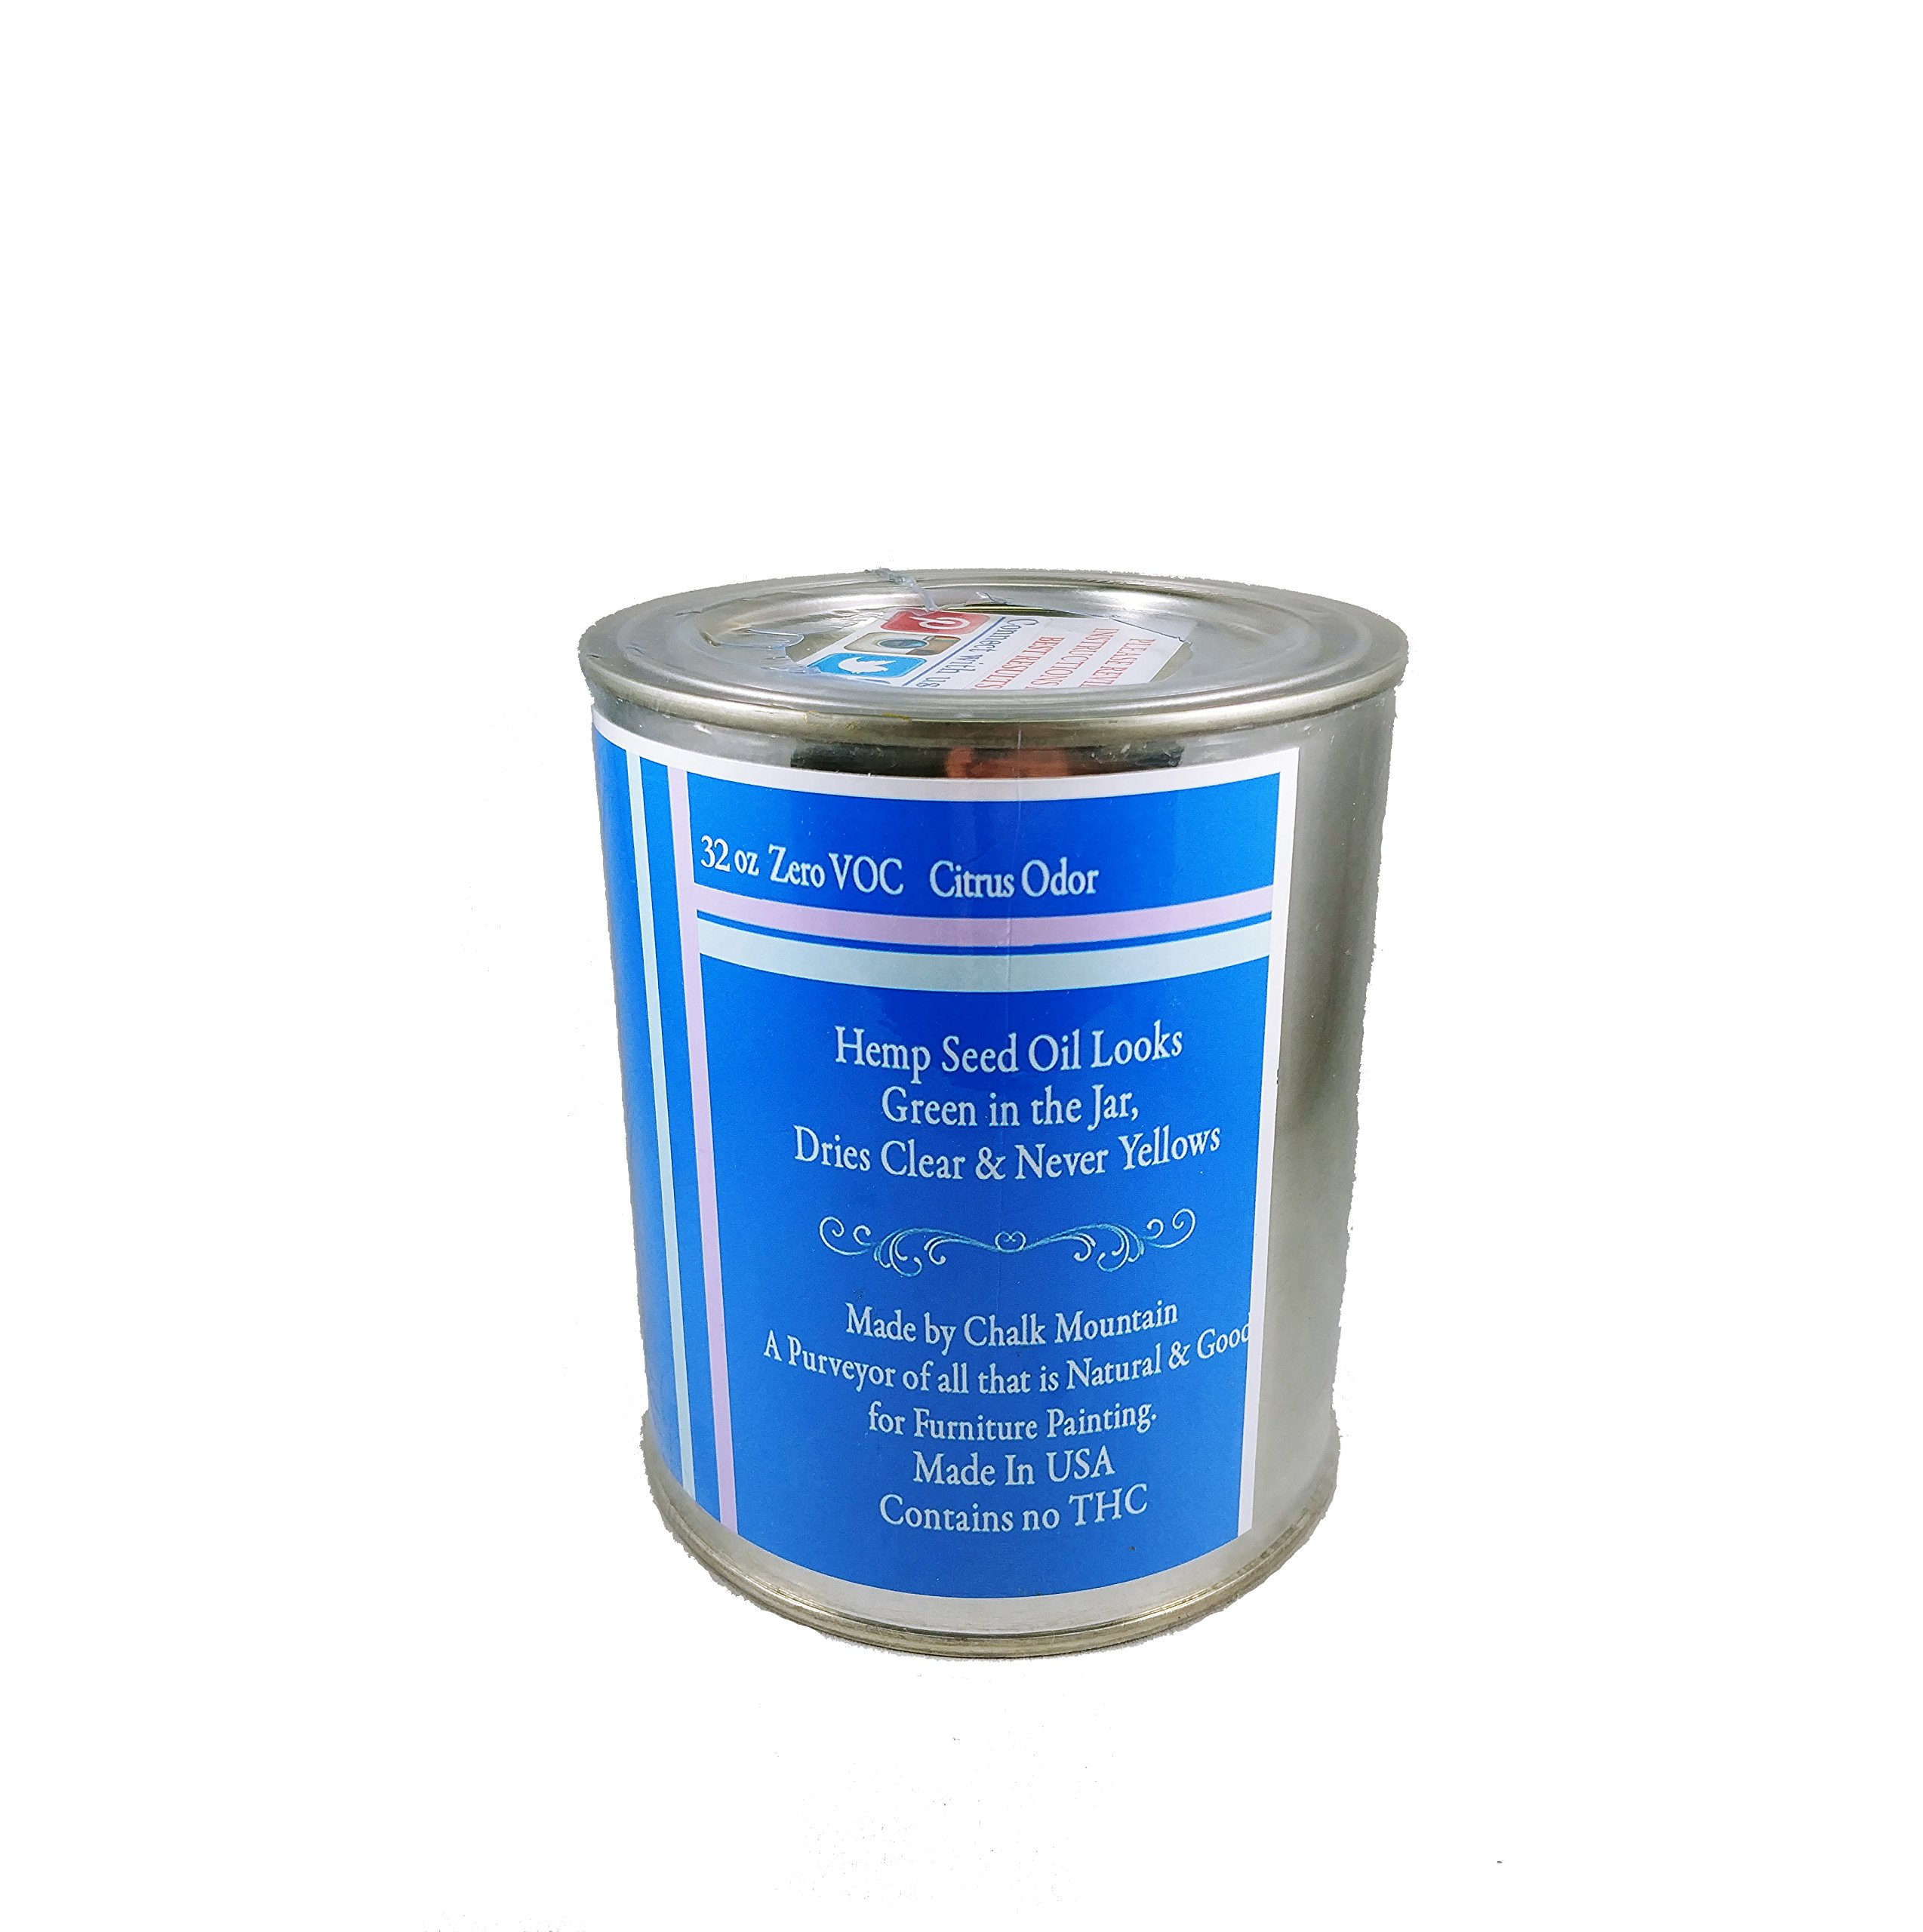 Chalk Mountain Brushes - Hemp Seed Oil Furniture Sealer - Seals and Protects Chalk, and Milk Paint, Furniture, Wood, and much much More! 32oz by Chalk Mountain Brushes (Image #3)